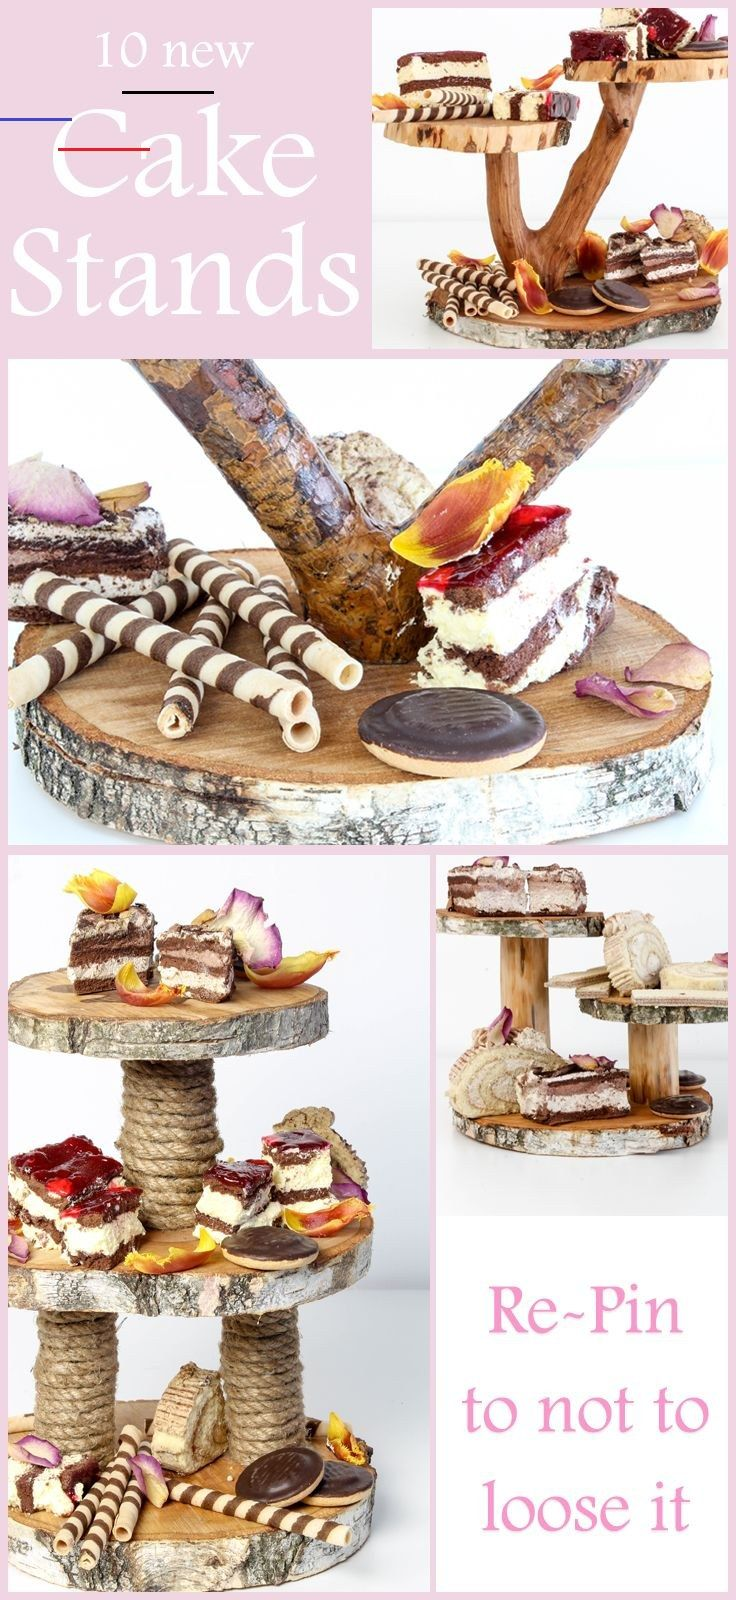 Many wooden cake stands made by hand. Visit website for more photos and inspirations. #wood #cake #cakestand #woodcakestand #decor #serving #sweets #cupcake #cupcakestand #stand #rustic #wooden #design #idea #wedding #weddingcake #weddingcakestand #handmade #vintage #diy #tiered #tieredcakestand #tree #treeslices #slices<br>